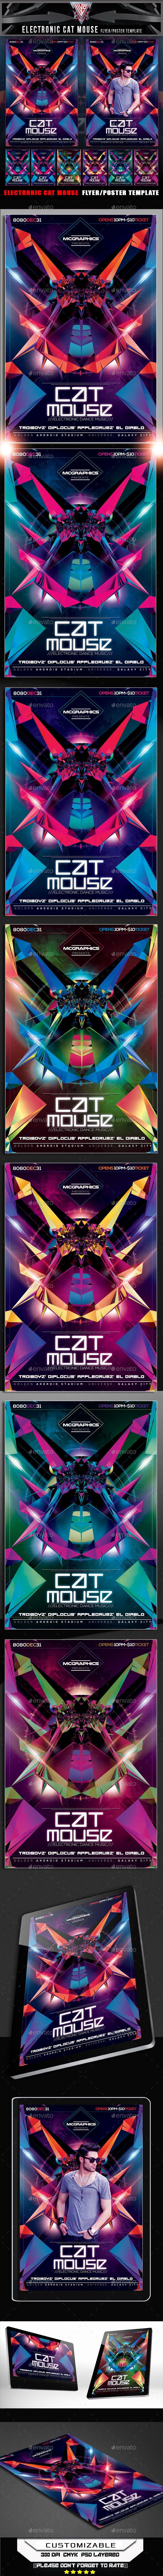 Electronic Cat Mouse Concept Flyer Template - Clubs & Parties Events